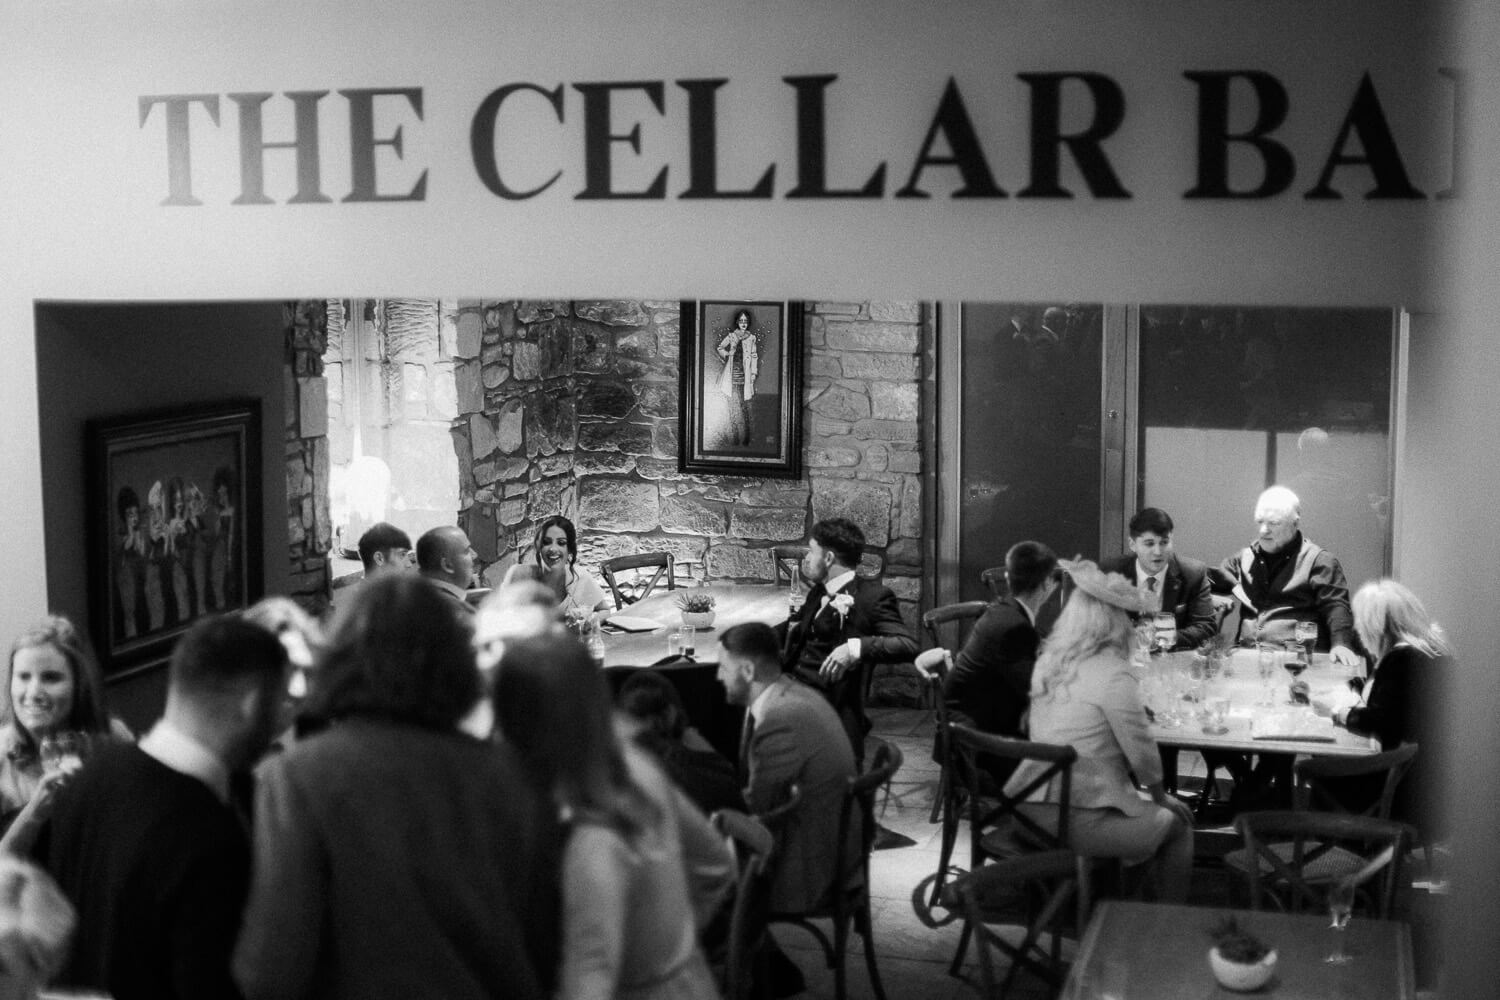 Guests talking in the cellar bar